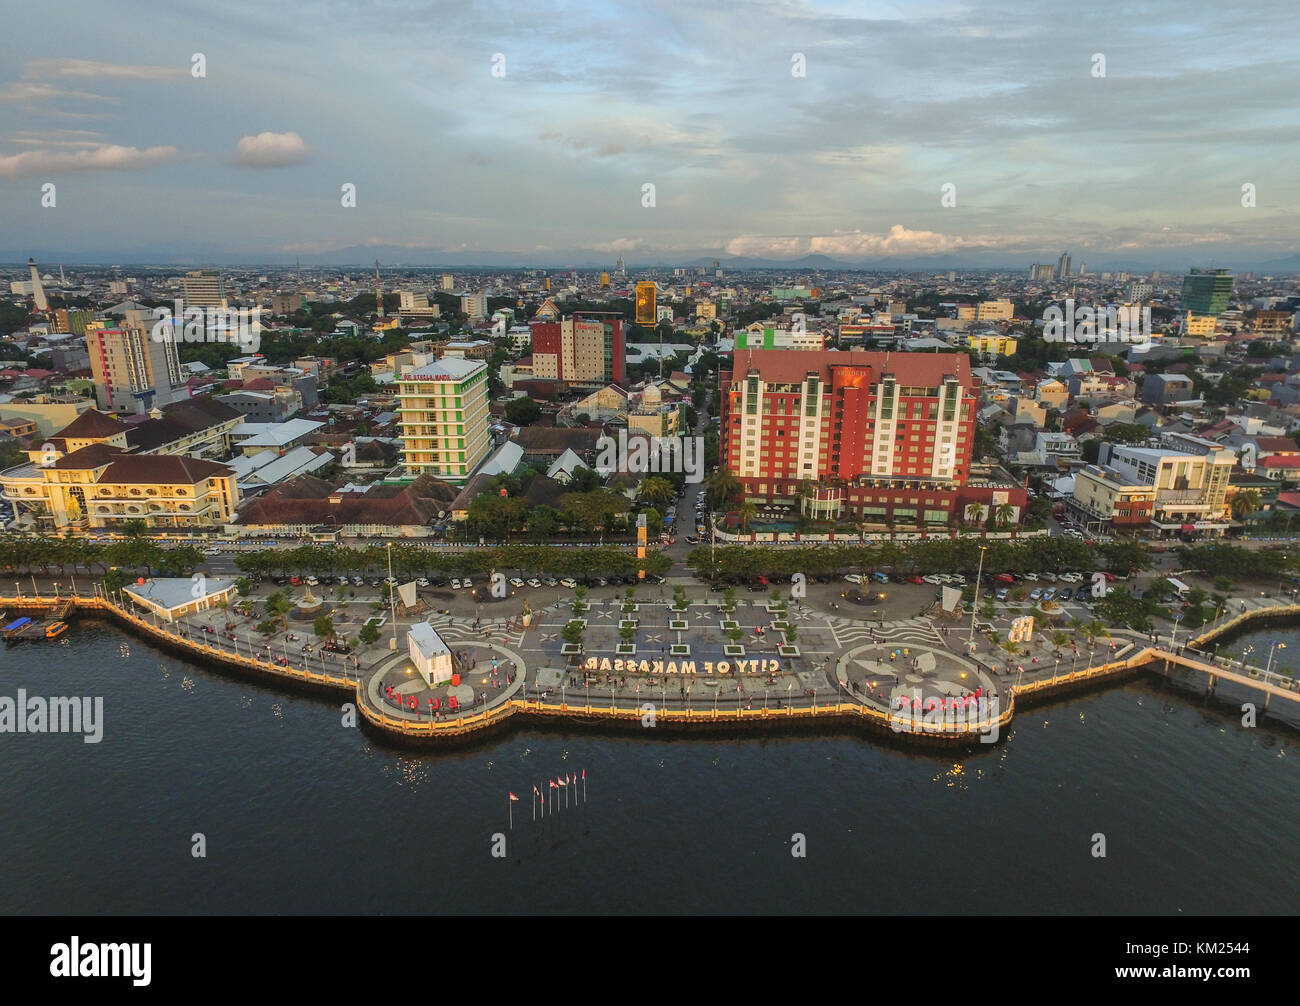 Losari Beach the icon for the City of Makassar taken a moment before the sunset. - Stock Image